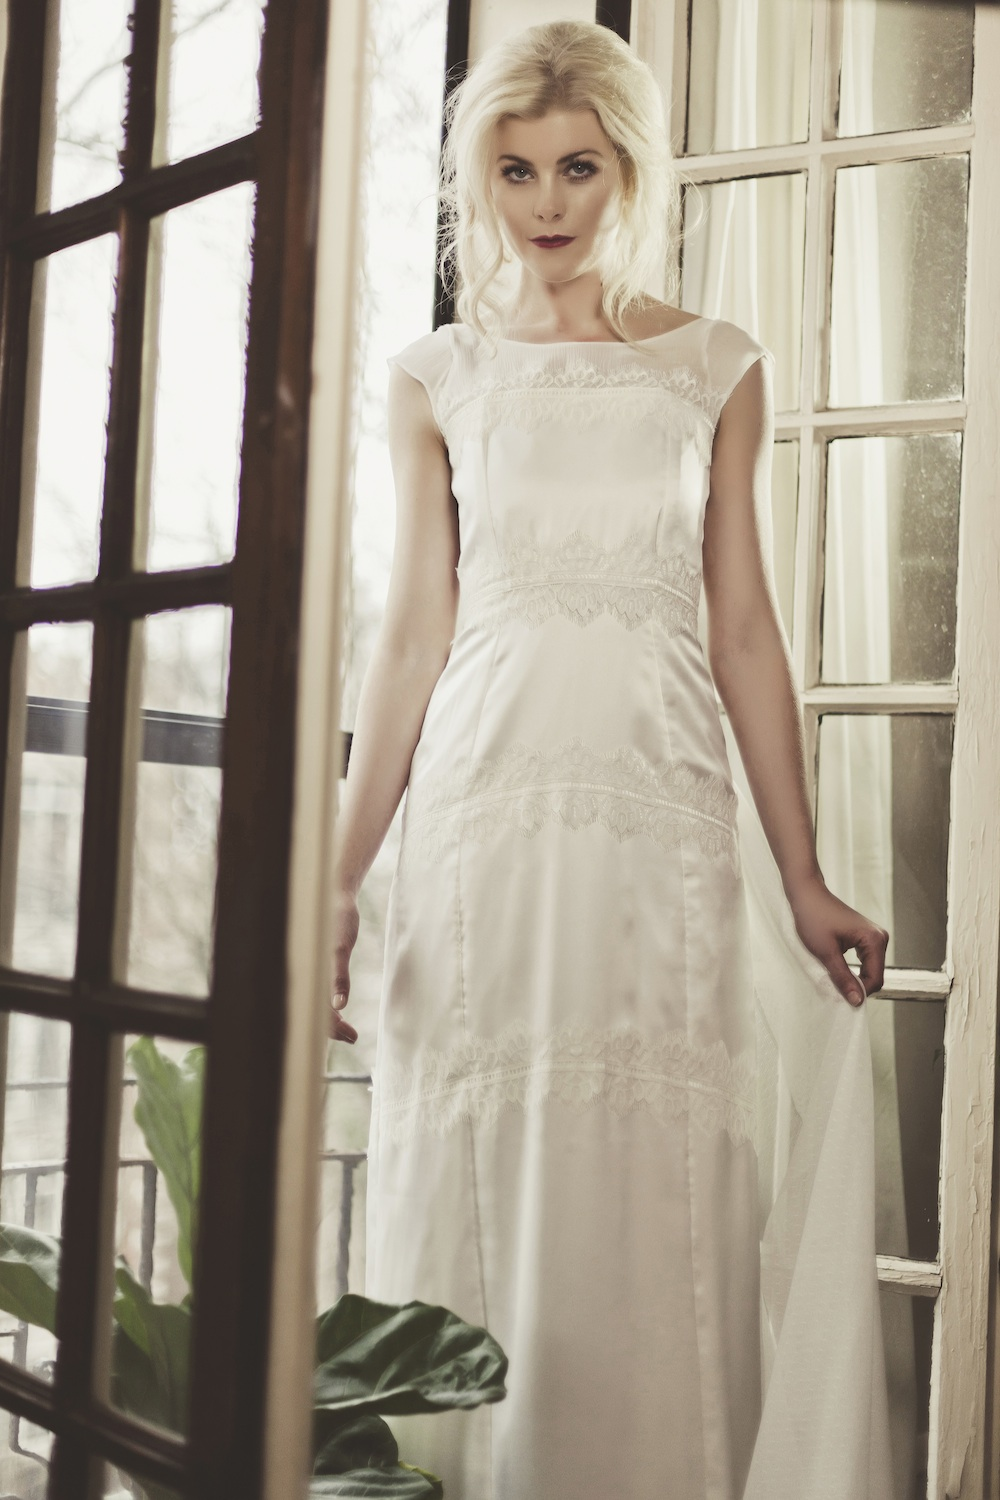 Veronica Sheaffer Orchid Wedding Gown